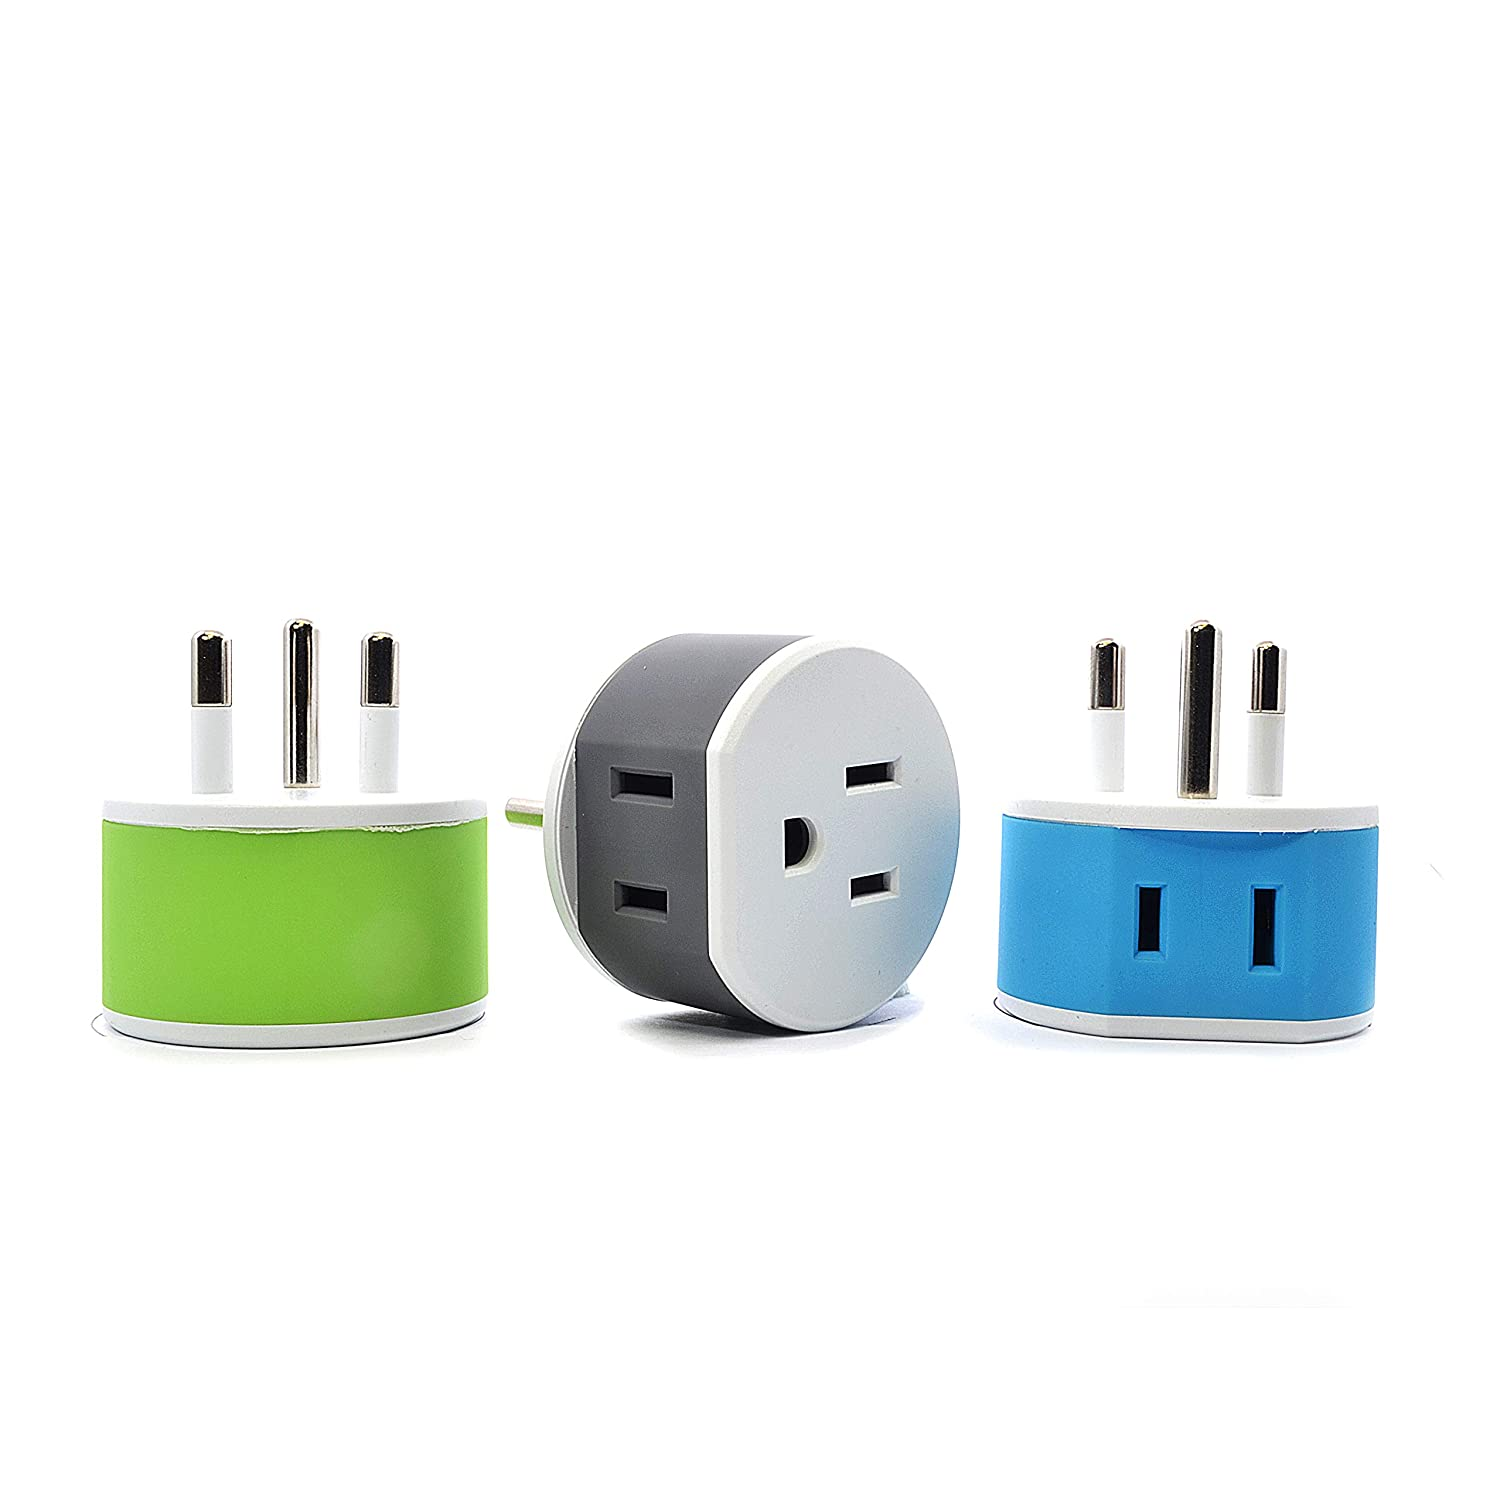 OREI Thailand Travel Plug Adapter - 2 USA Inputs - 3 Pack - Type O (US-18) - Does Not Convert Voltage Orei Products